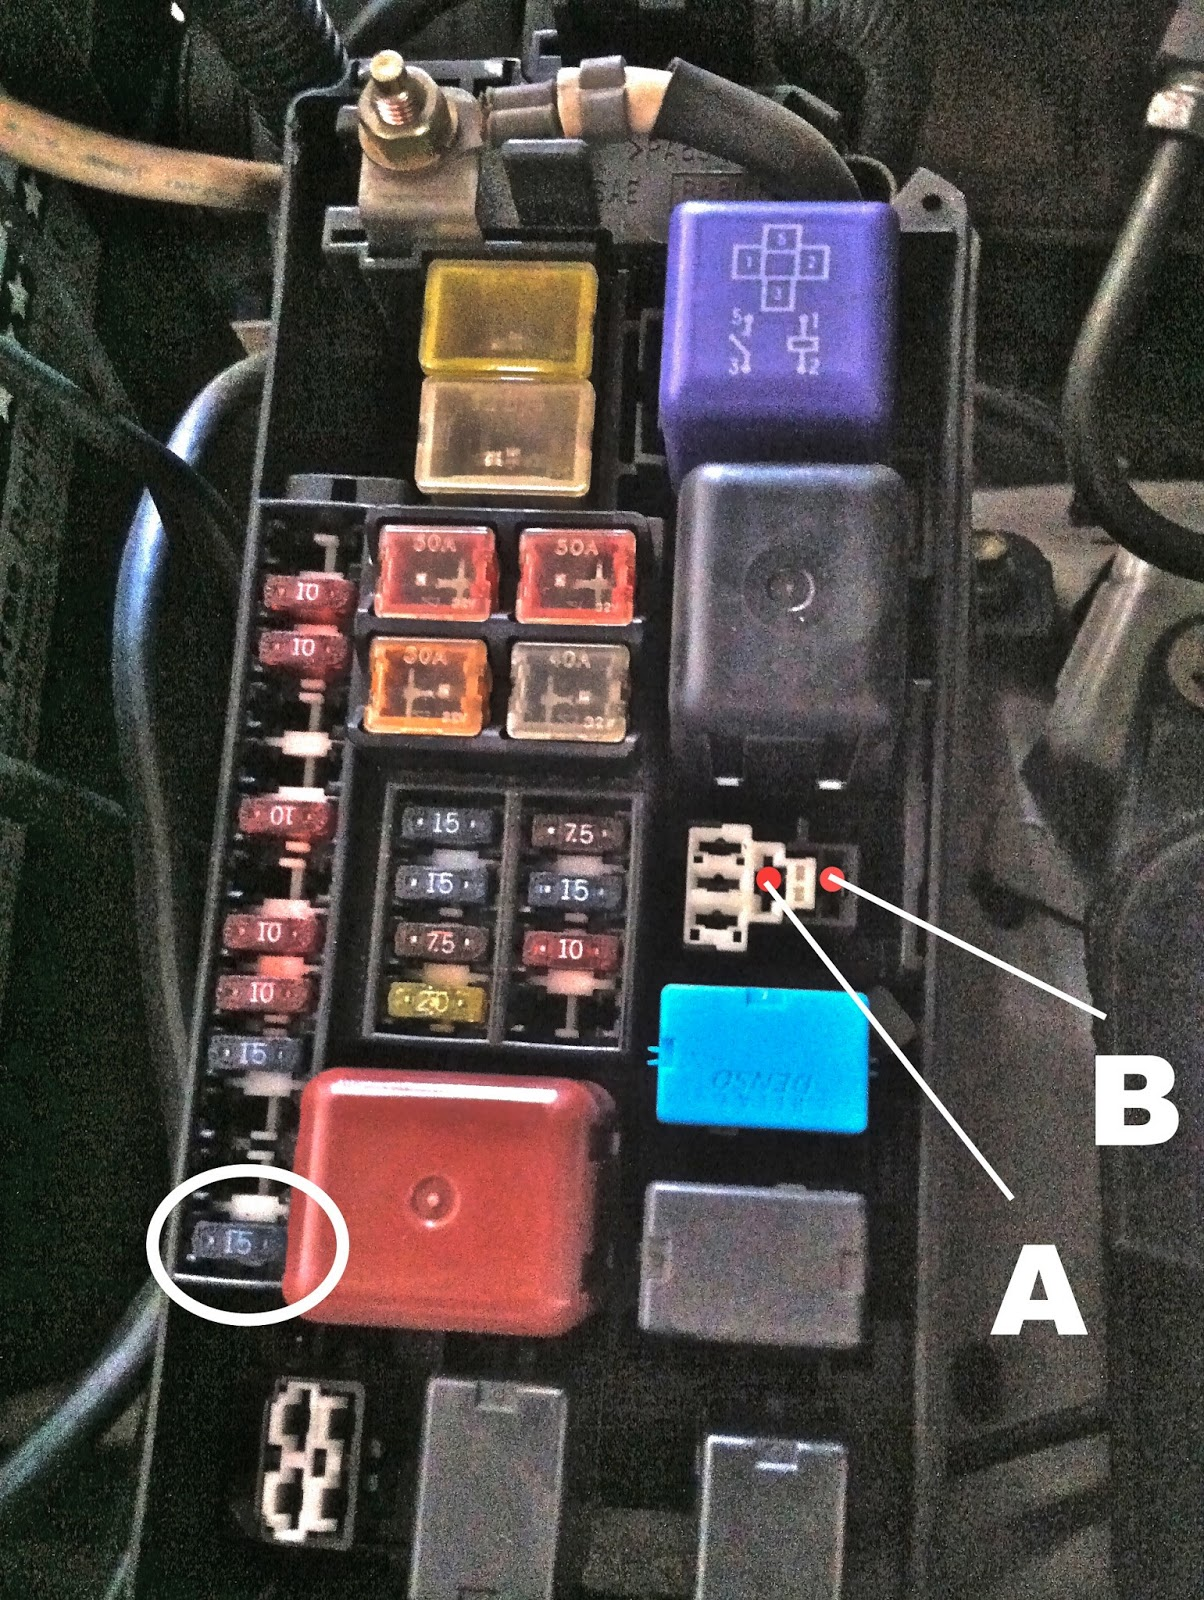 1991 Bmw 325i Fuse Box Diagram Wiring Will Be A Thing 1988 2004 Toyota Echo Free Engine Image 1989 2006